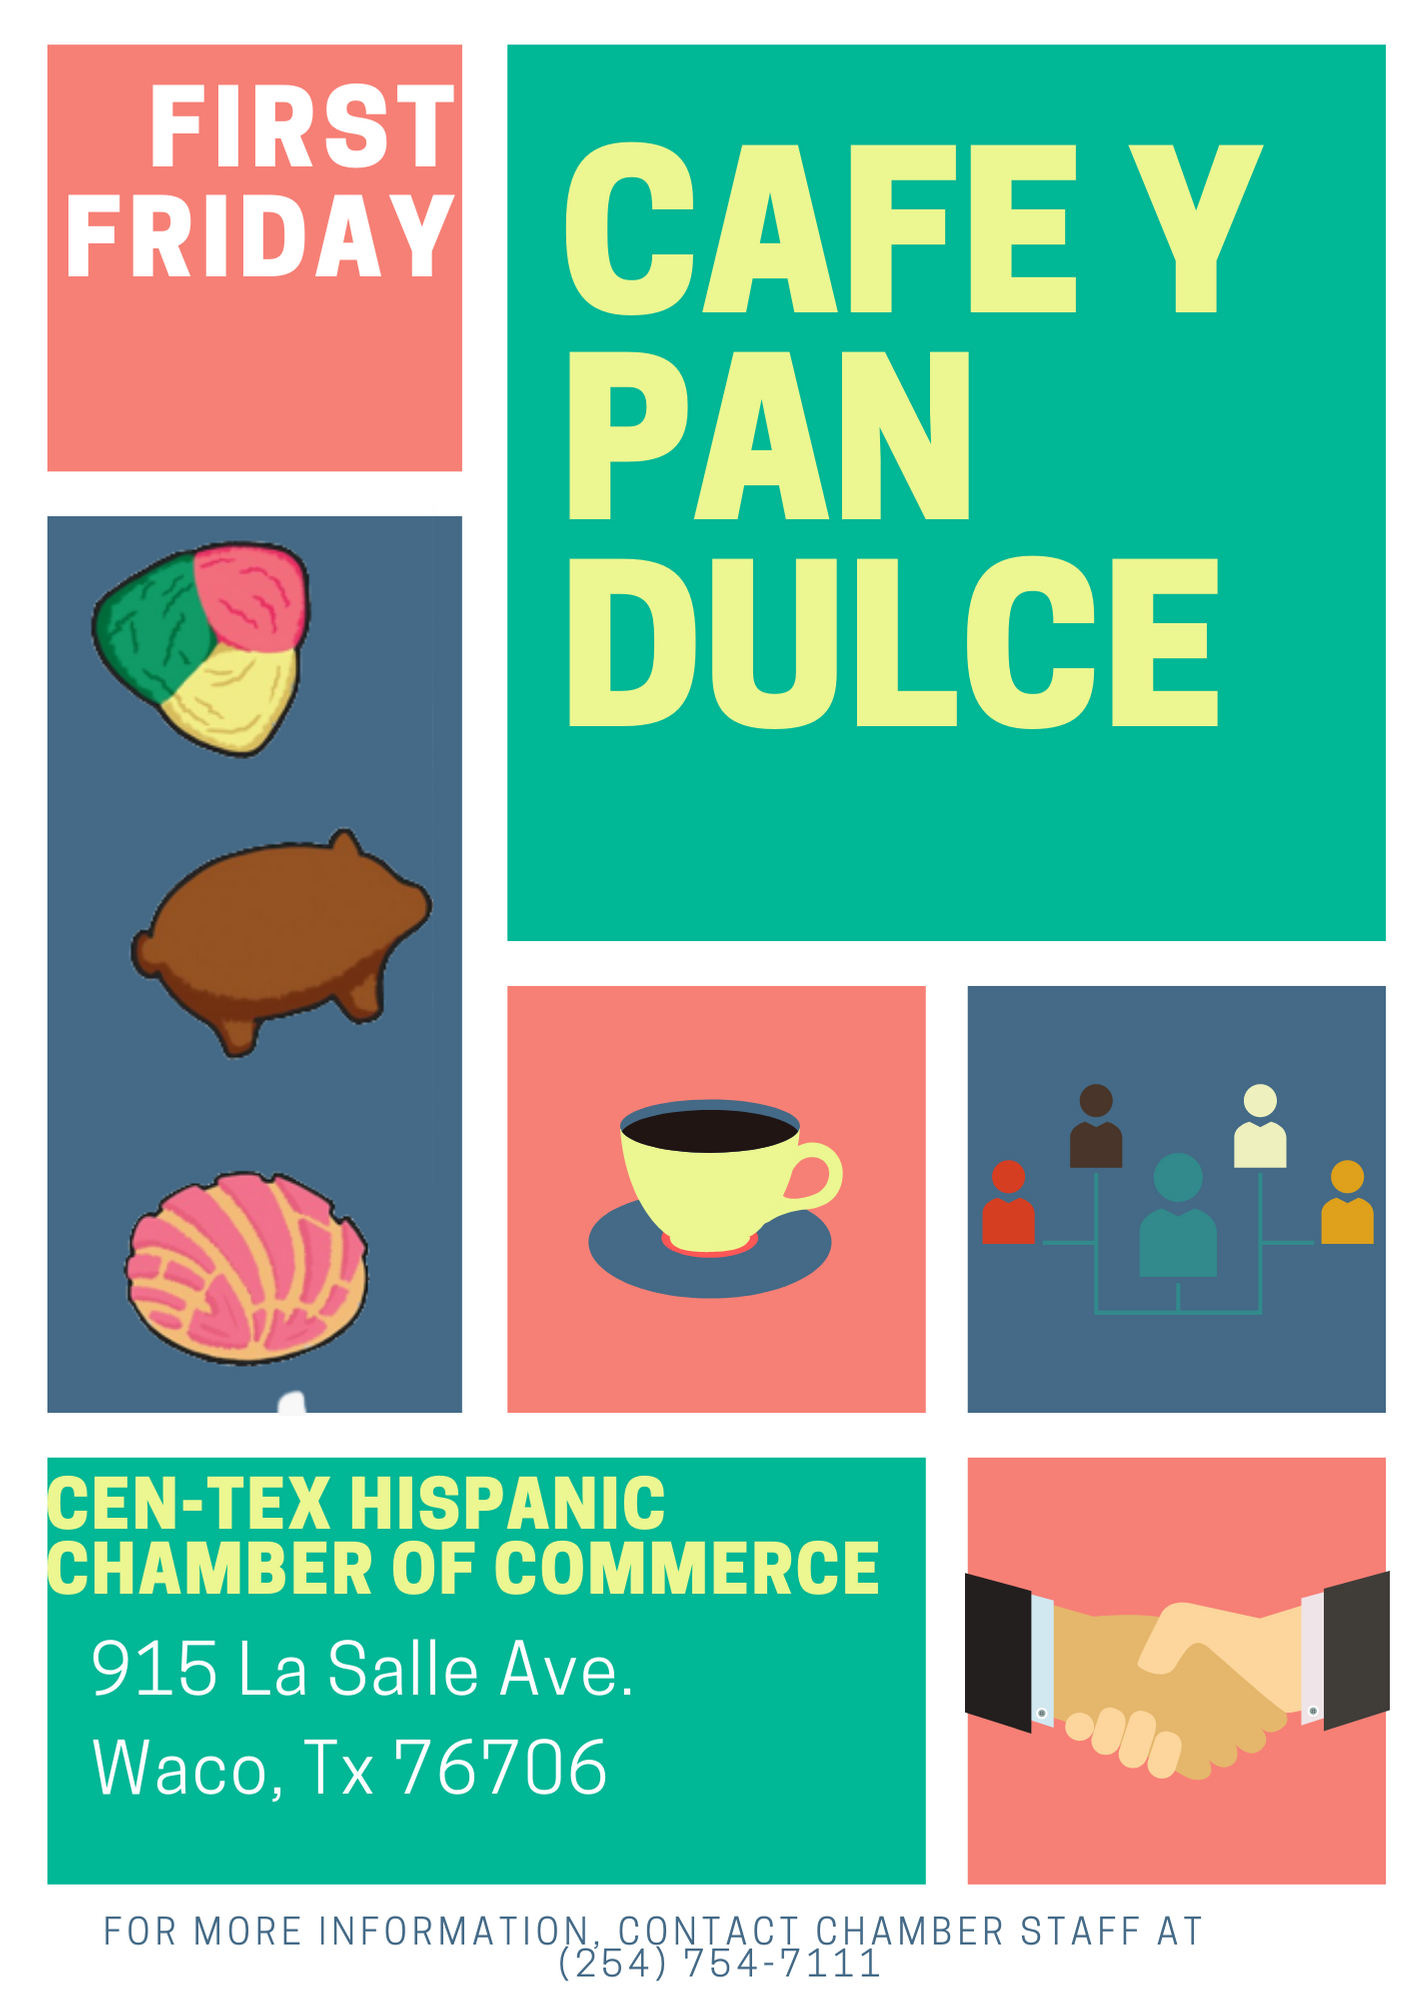 First Friday Cafe Y Pan Dulce